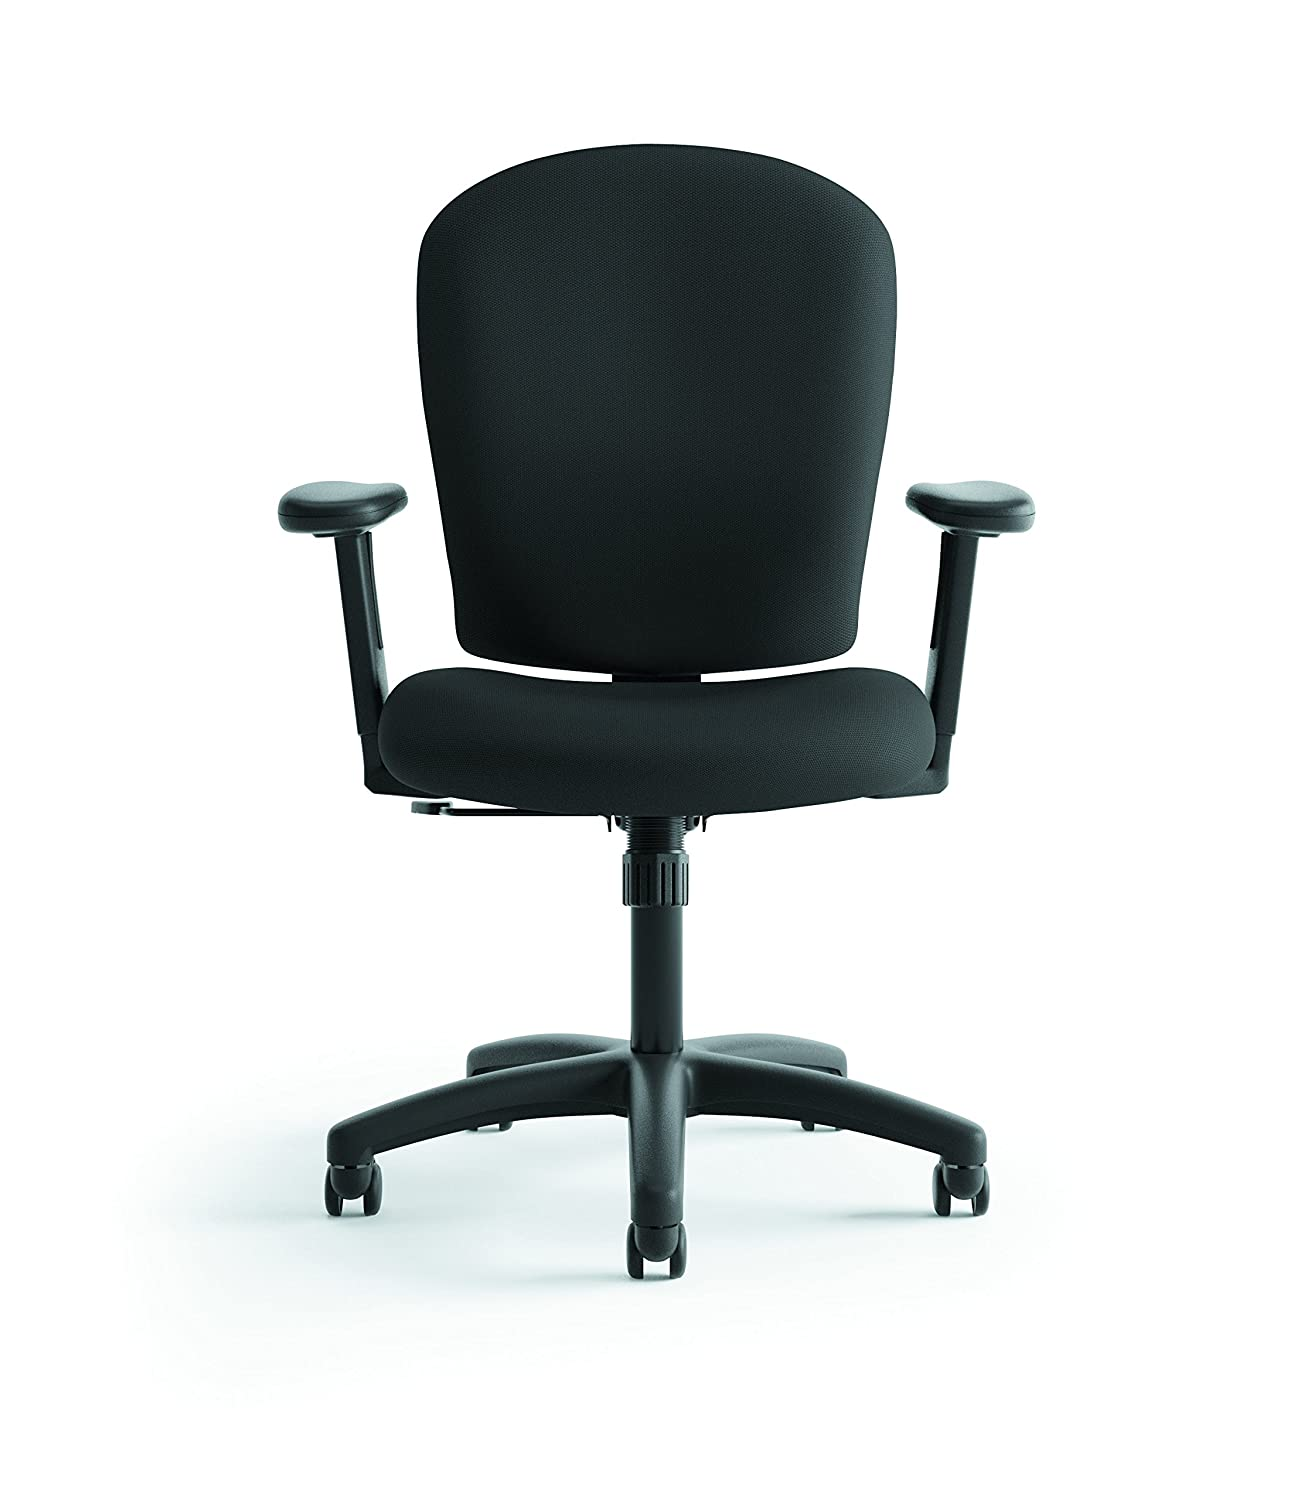 basyx by HON Mid Back Task Chair - Fabric Computer Chair with Arms for Office Desk - Black (HVL220)